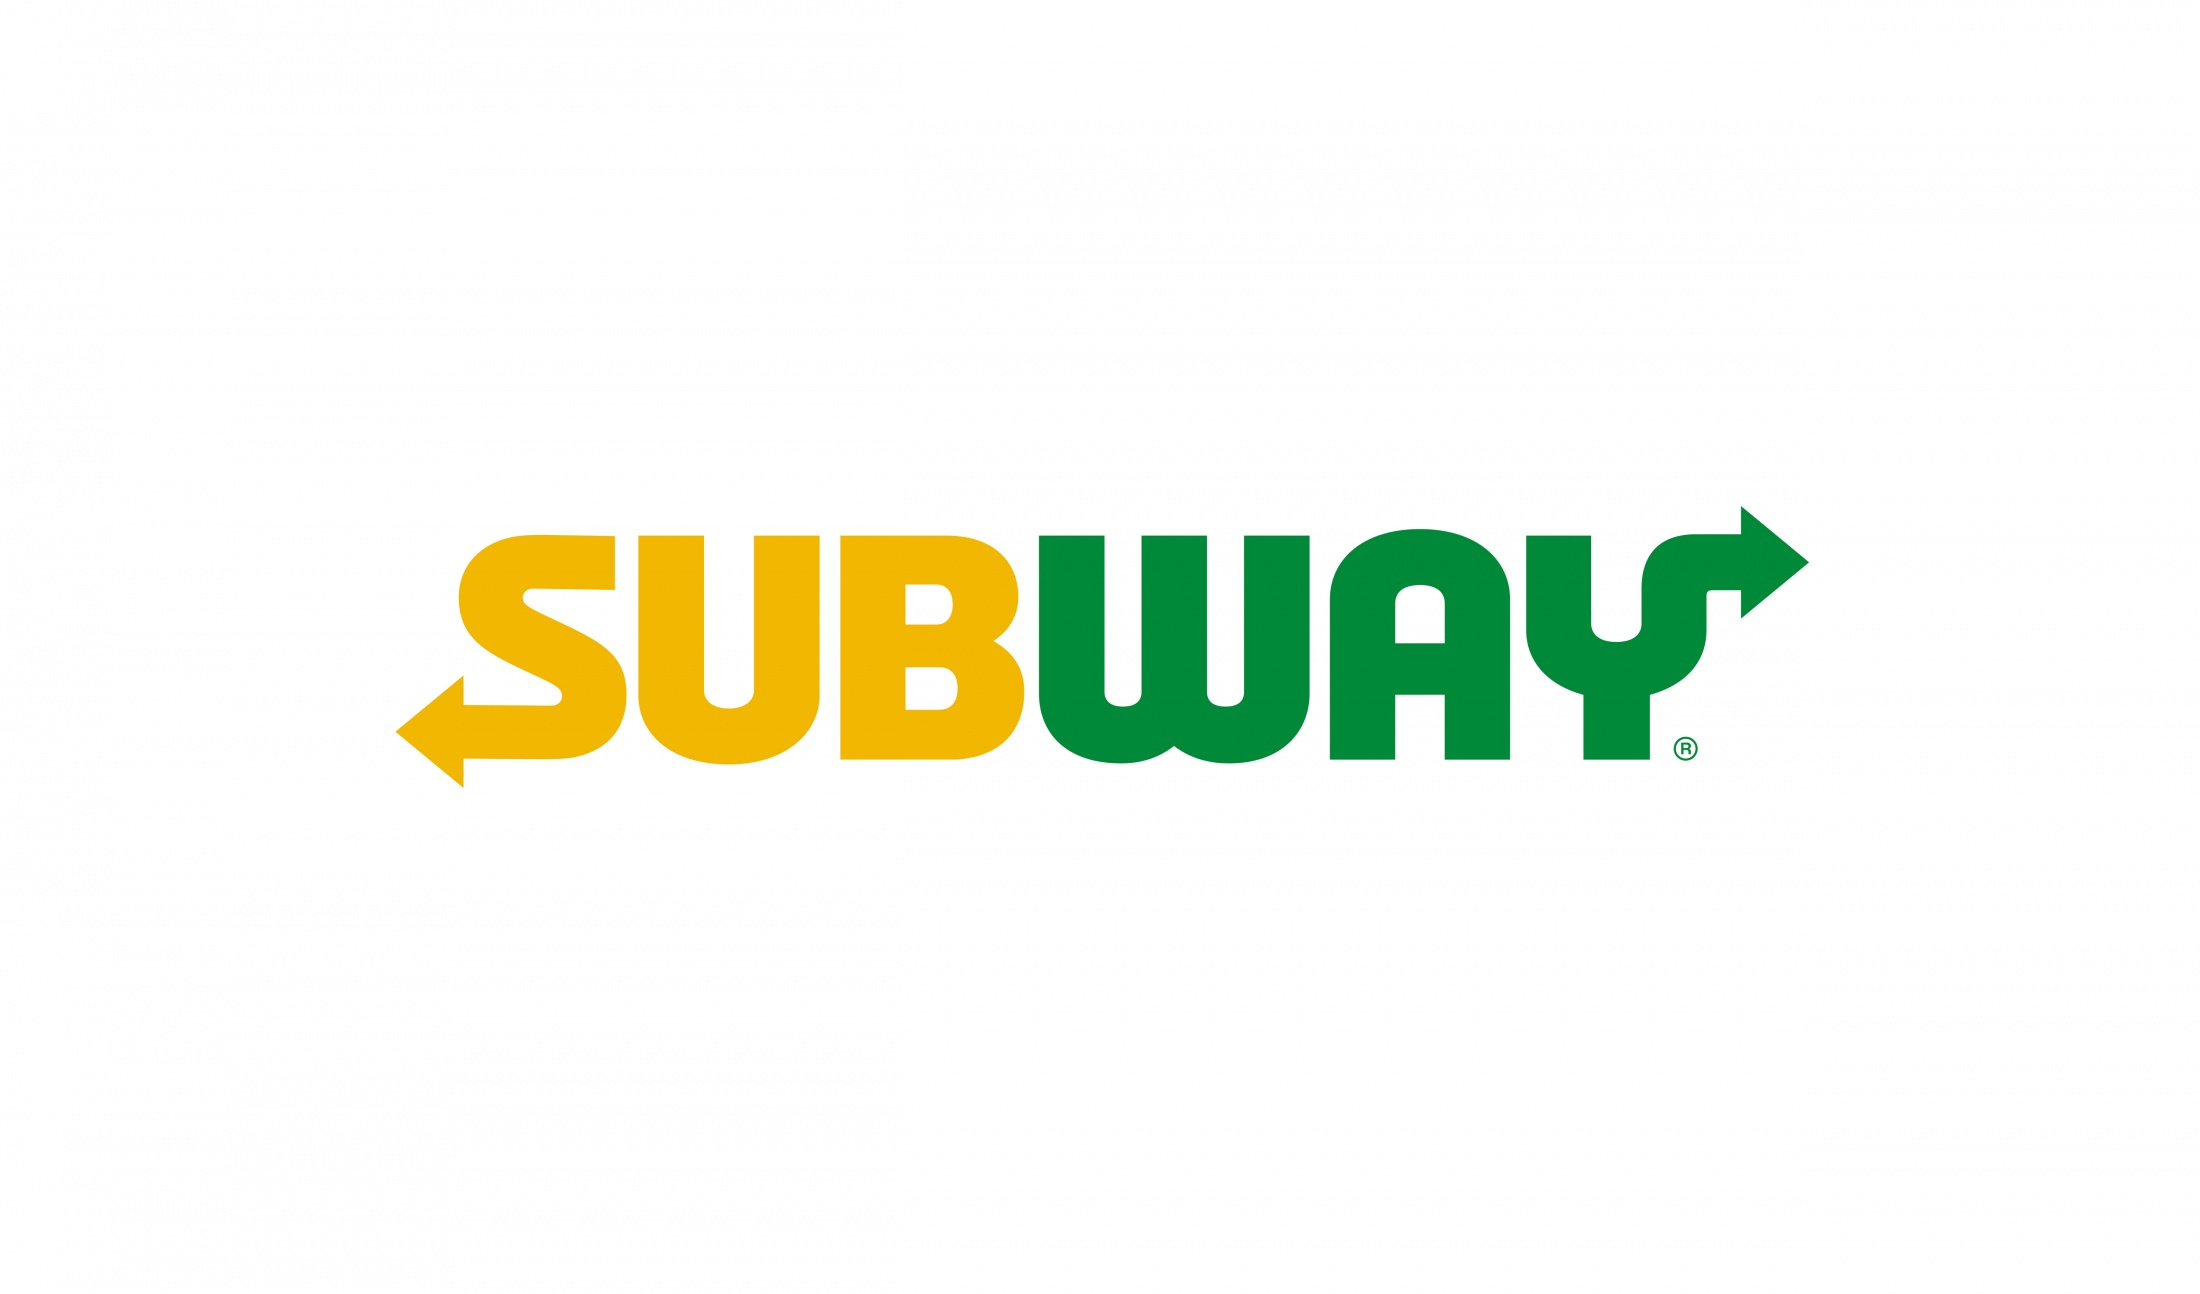 Thumbnail for Subway Visual Identity